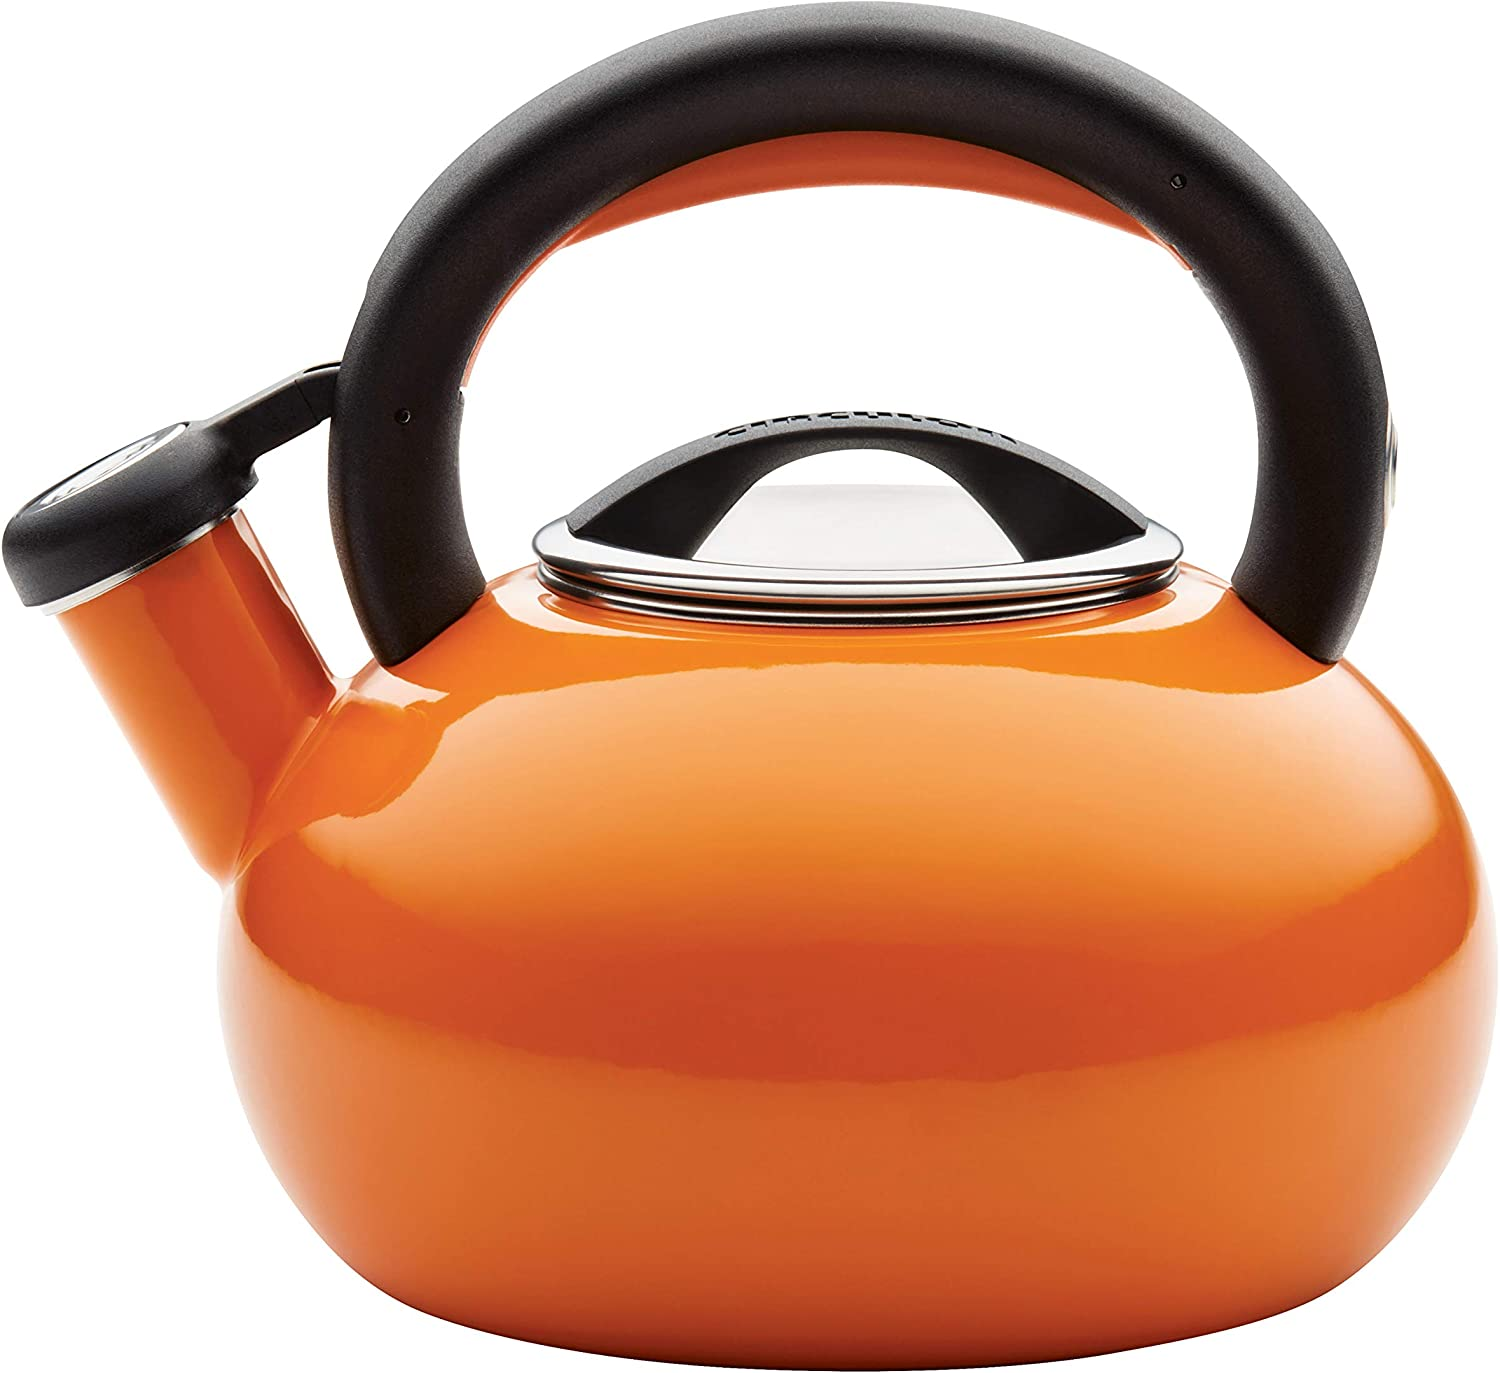 Circulon Sunrise Whistling Kettle/Stovetop Teakettle/Tea Pot, 1.5 Quart,